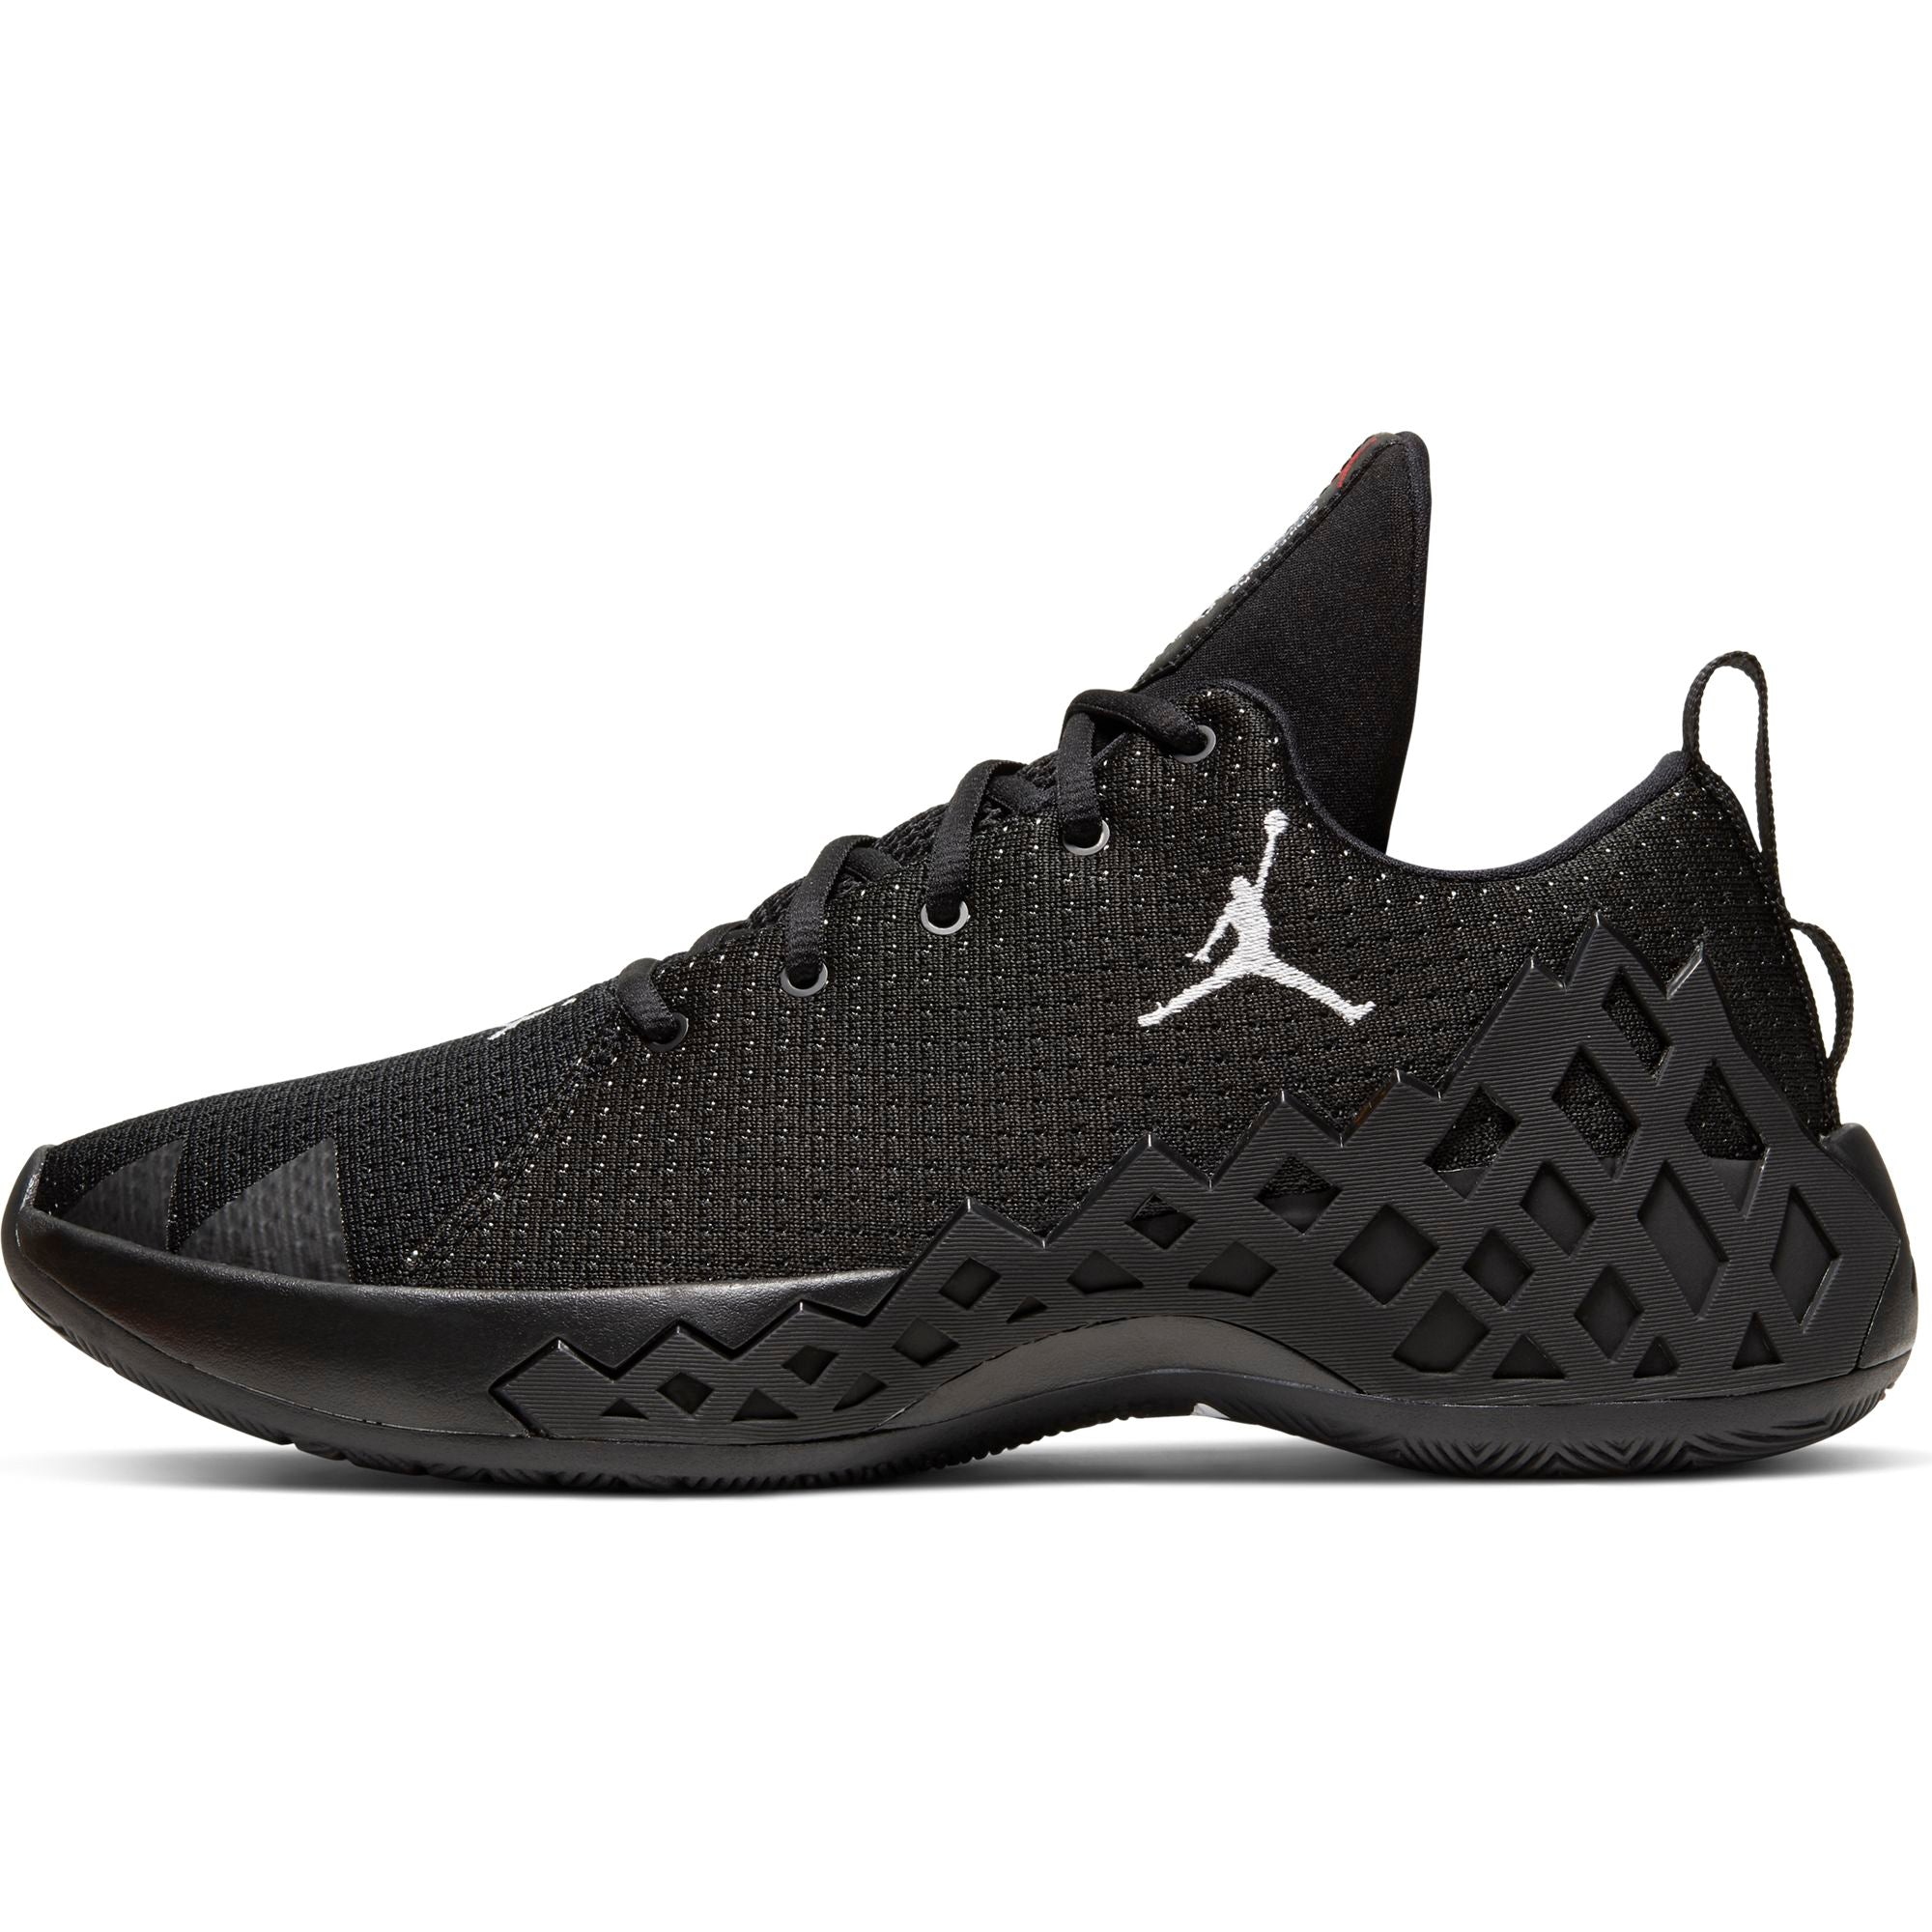 Nike Jordan Jumpman Diamond Low Basketball Shoe - NK-CI1207-010